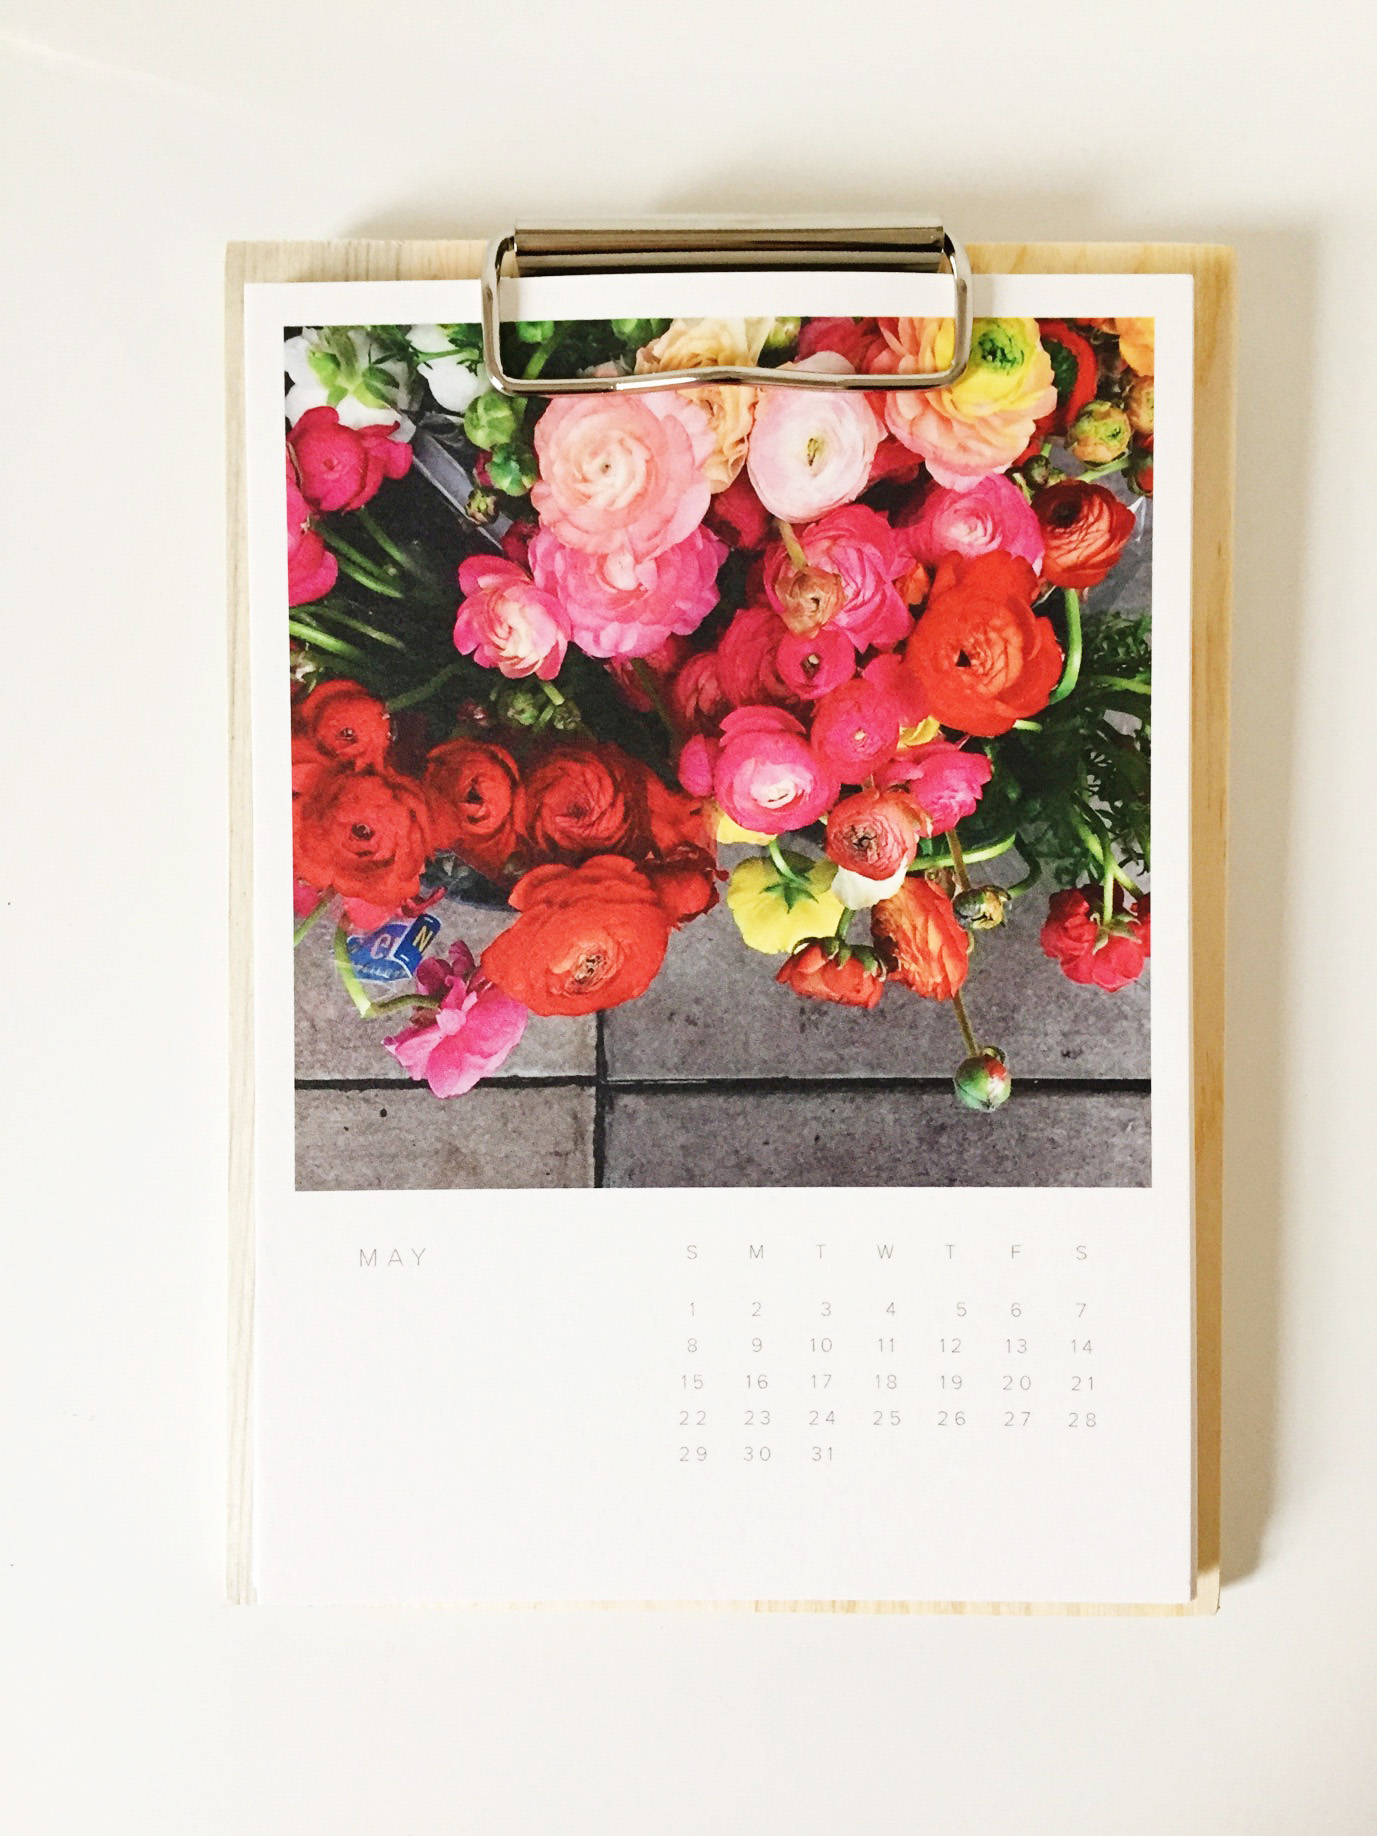 May 2016 desk calendar by Sweet Eventide Photography